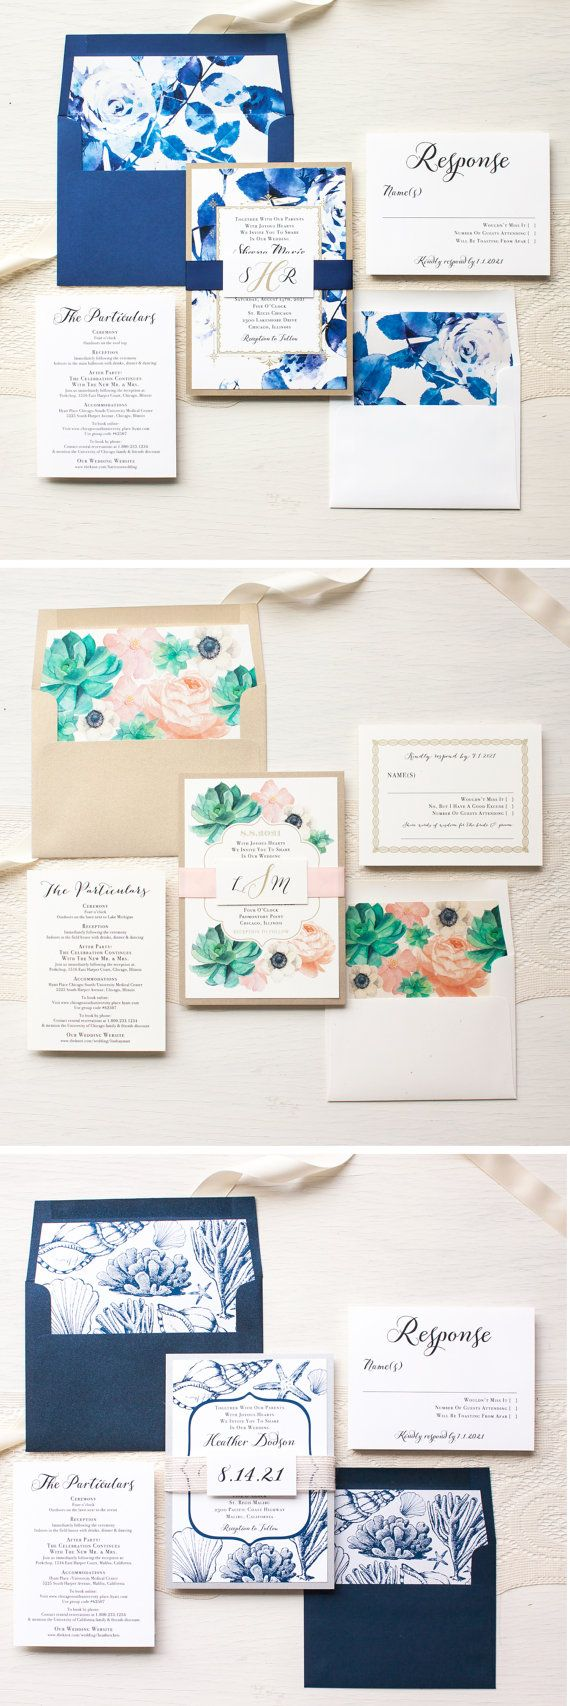 beach wedding invitation examples%0A BLUSH SUCCULENT   Blush Succulent wedding invitations with romantic script  fonts  a personalized monogram tag